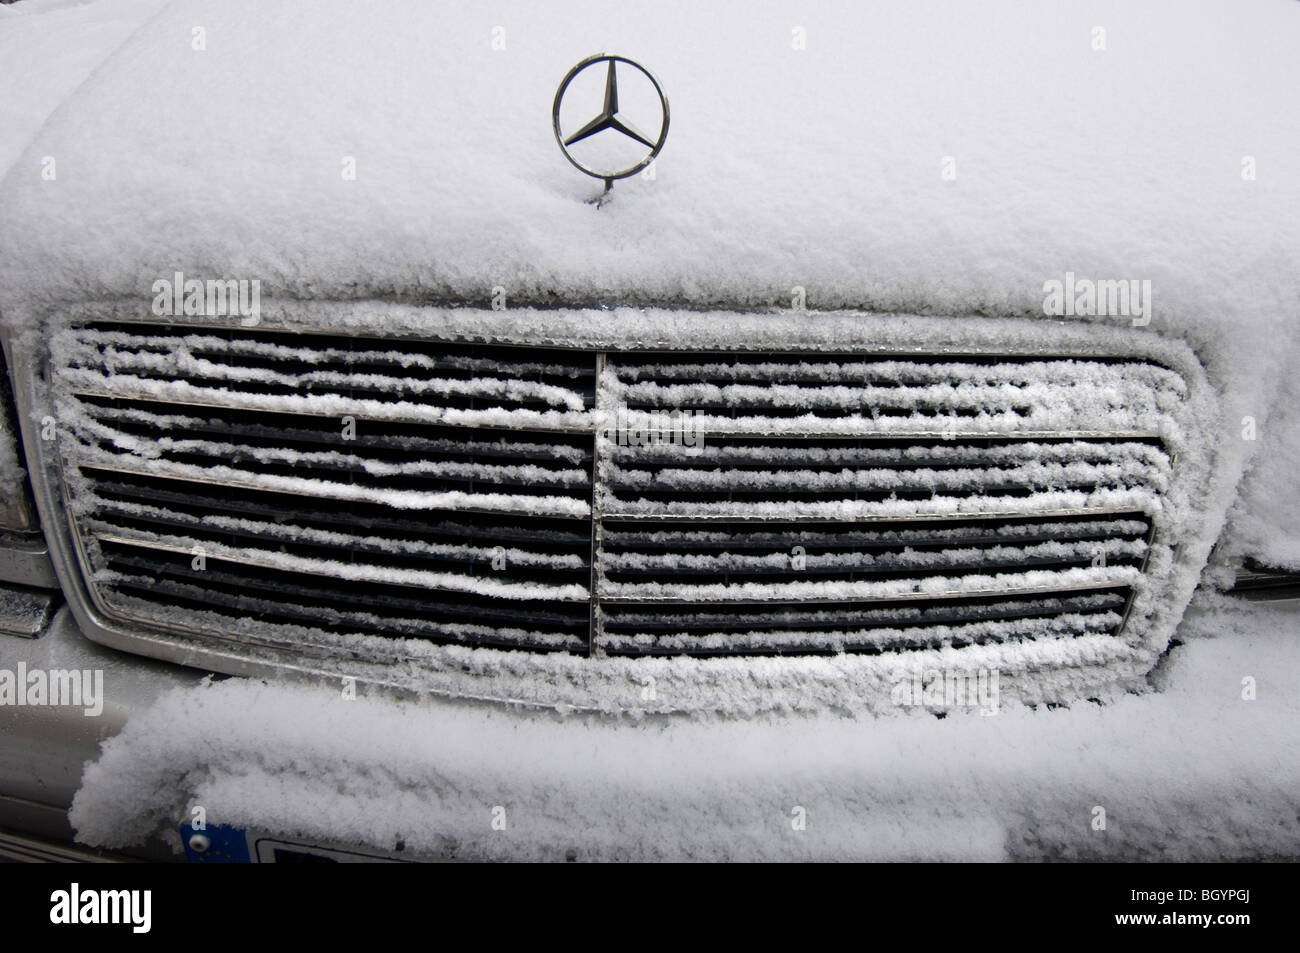 A snow covered MERCEDES car showing the radiator grille and badge Stock Photo